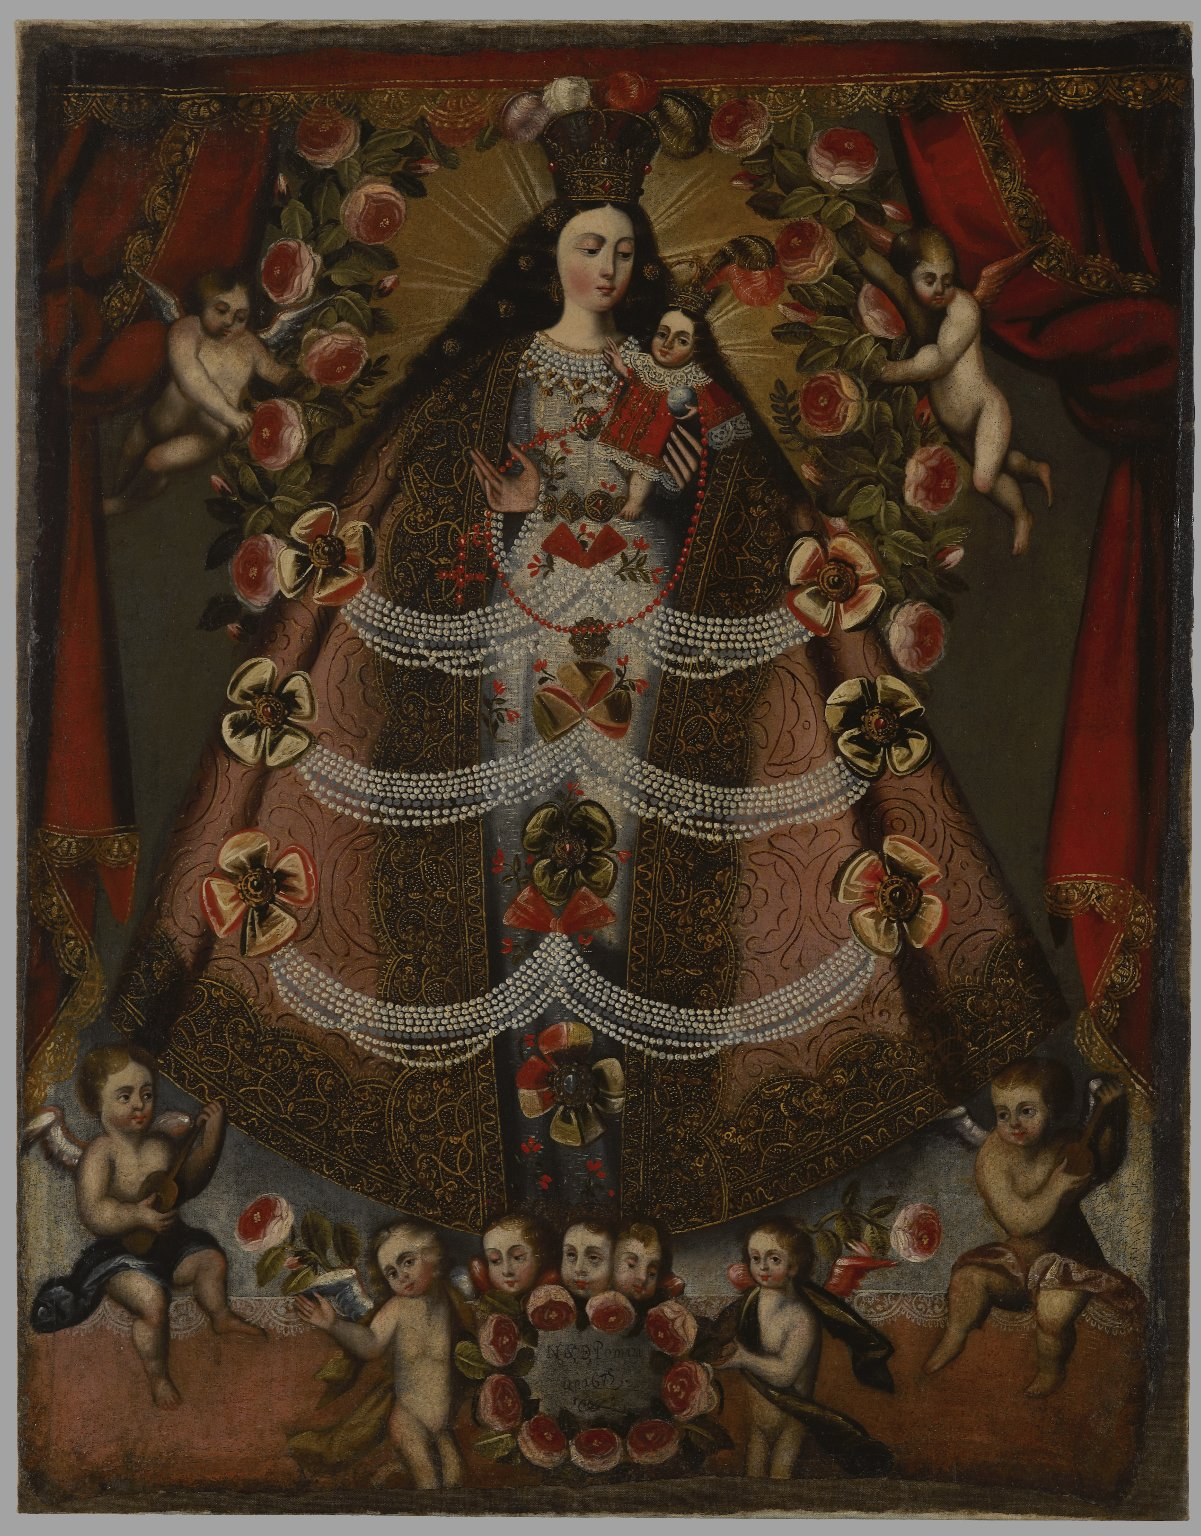 Cuzco school, Our Lady of Pomata, 1675